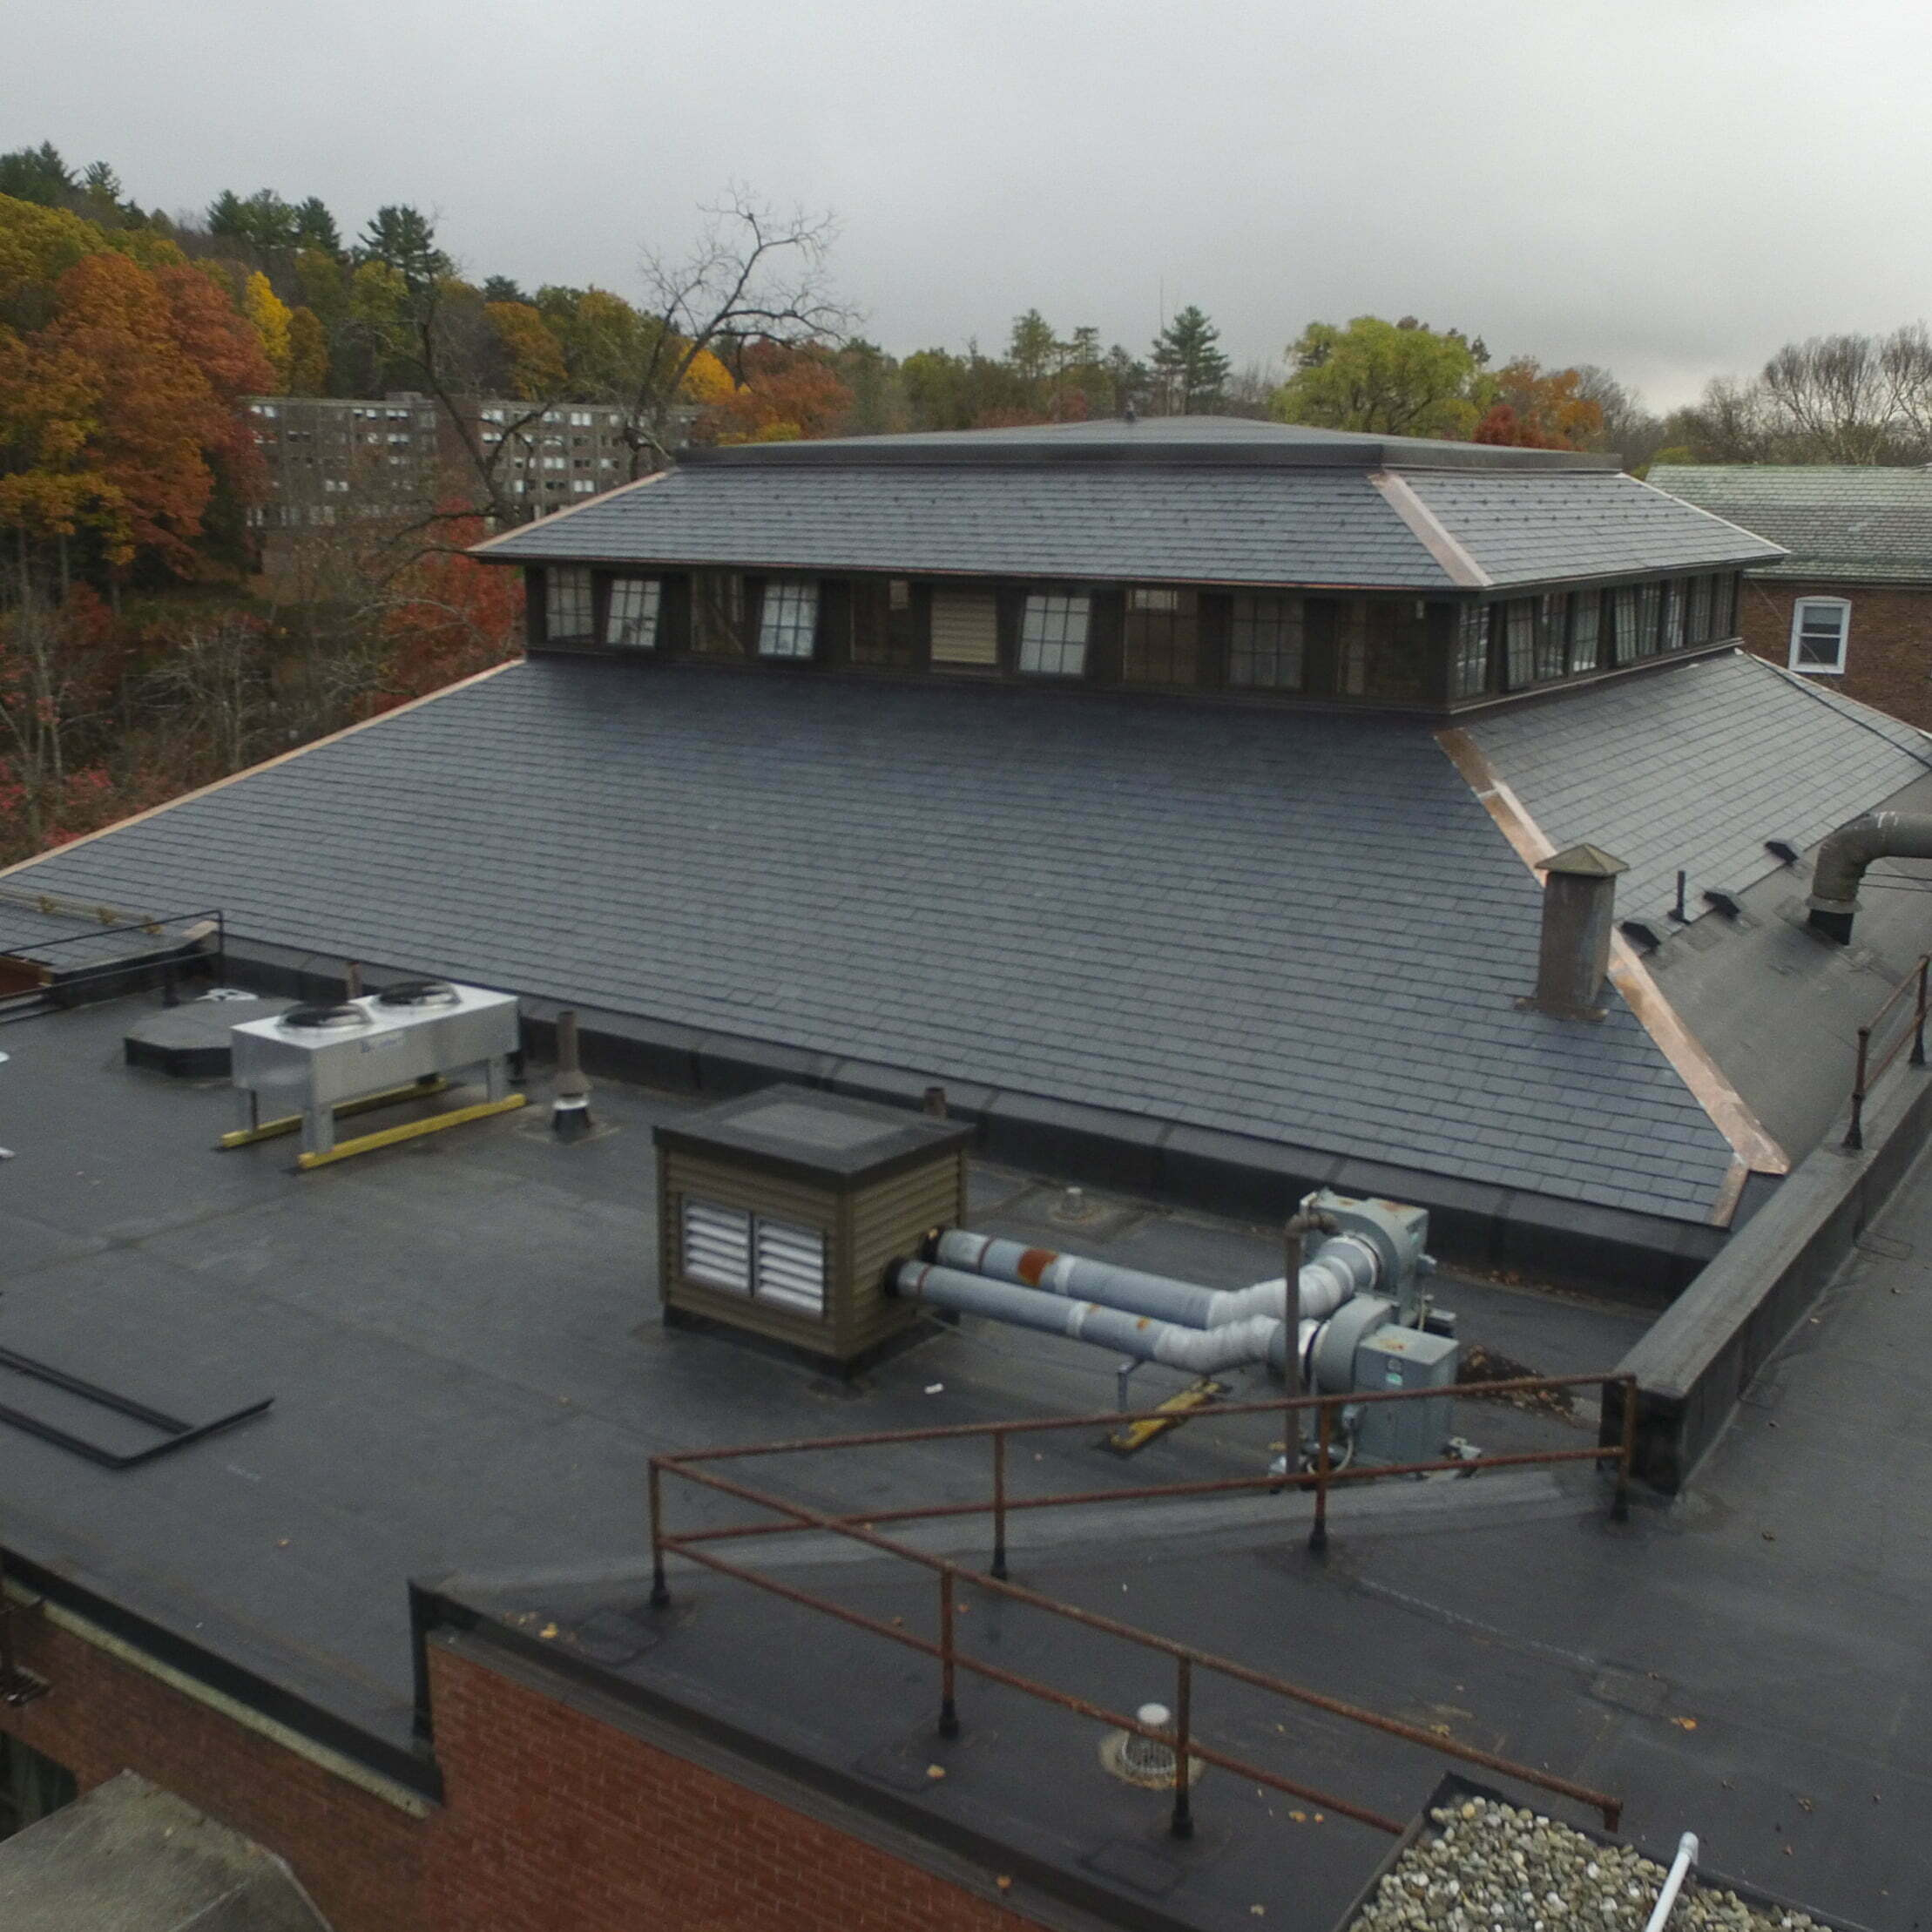 Image shot Mount Holyoke University Mail Bldg, Completed Project Drone, October 29, 2019, South Hadley, Massachusetts, Jeffrey Parr/Supreme Roofing